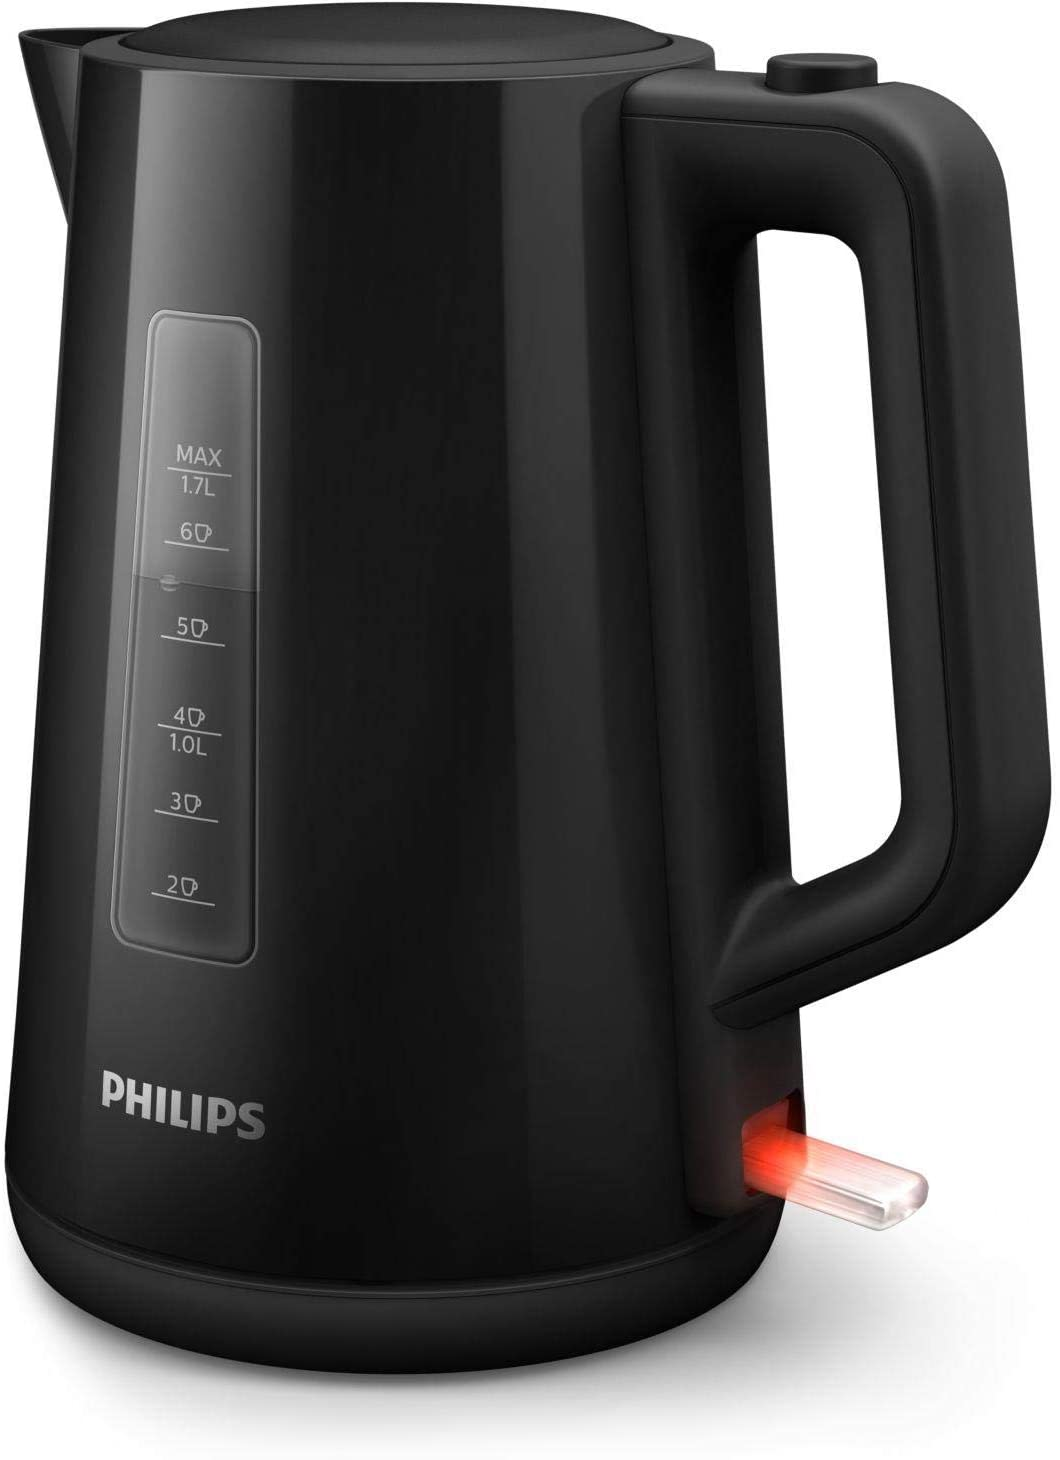 Philips Wasserkocher amazon